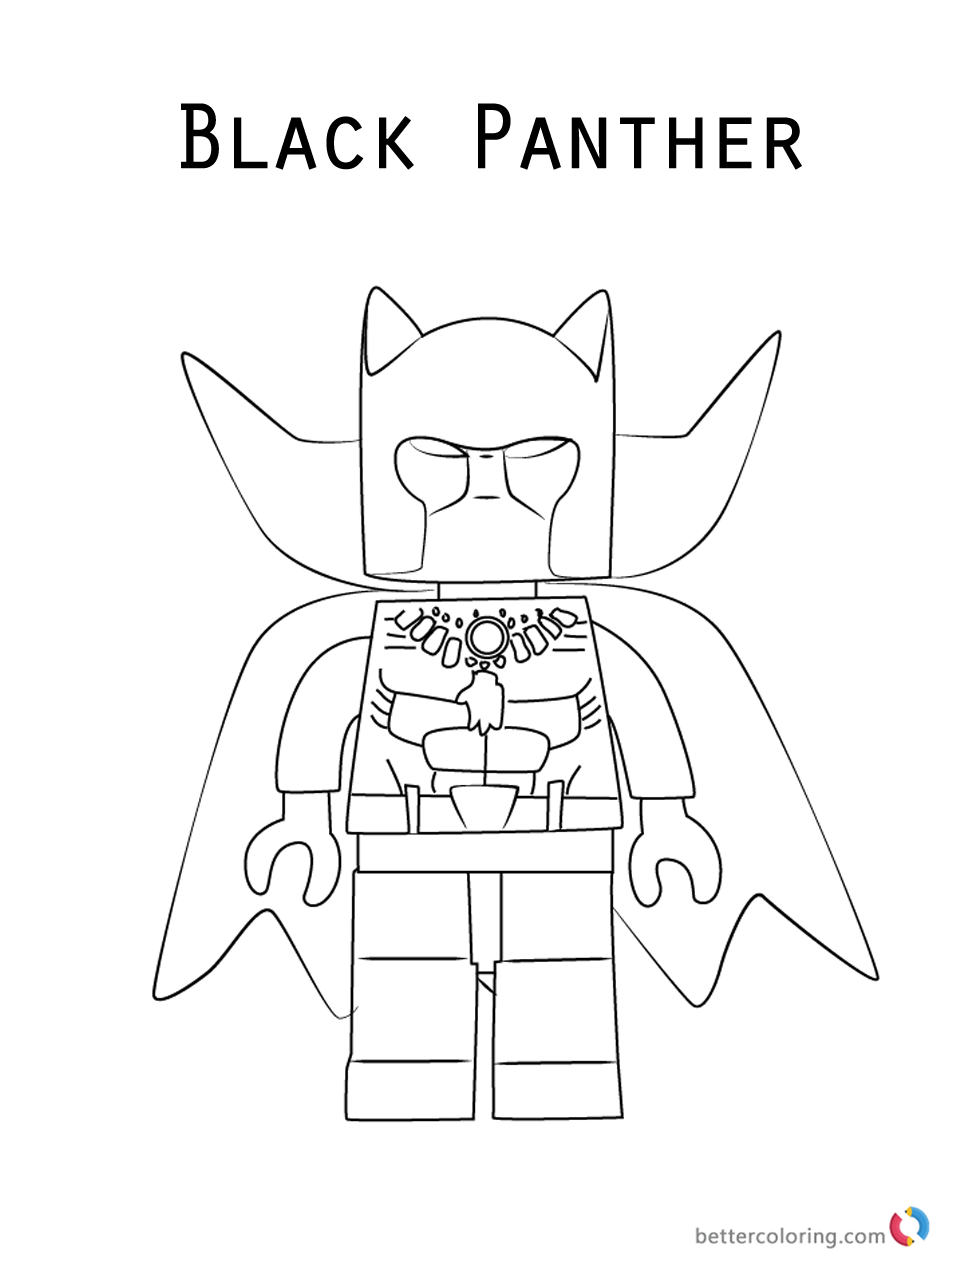 Lego Marvel Coloring Pages To Download And Print For Free: Black Panther LEGO Coloring Pages